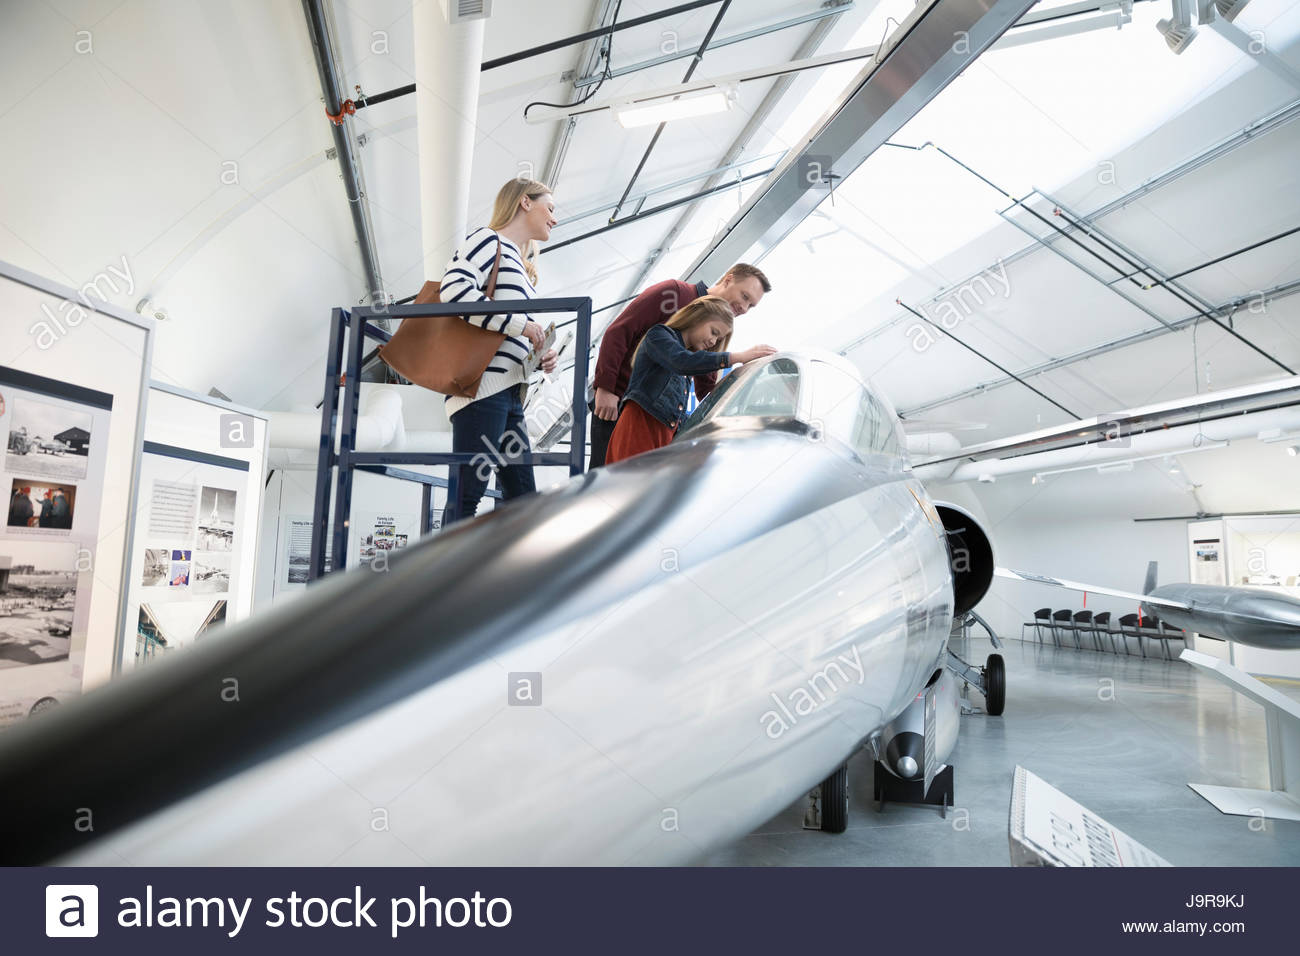 Family looking at airplane in warm museum hangar - Stock Image